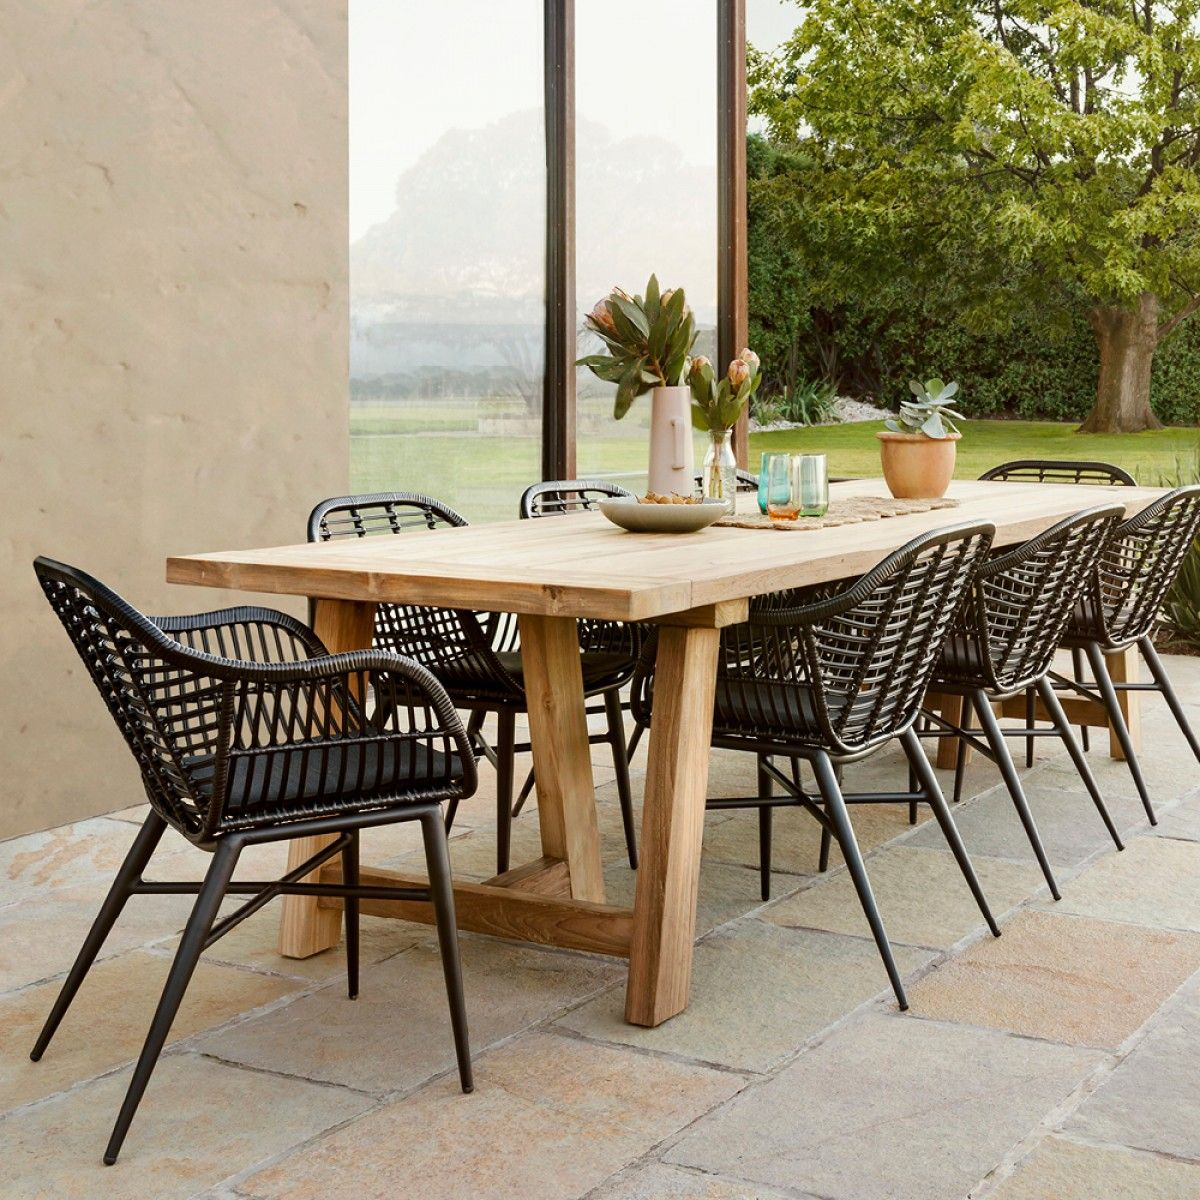 Early Settler Canterbury Teak Dining Table 3000mm Tables Outdoor Modern Outdoor Dining Teak Dining Table Teak Table Outdoor